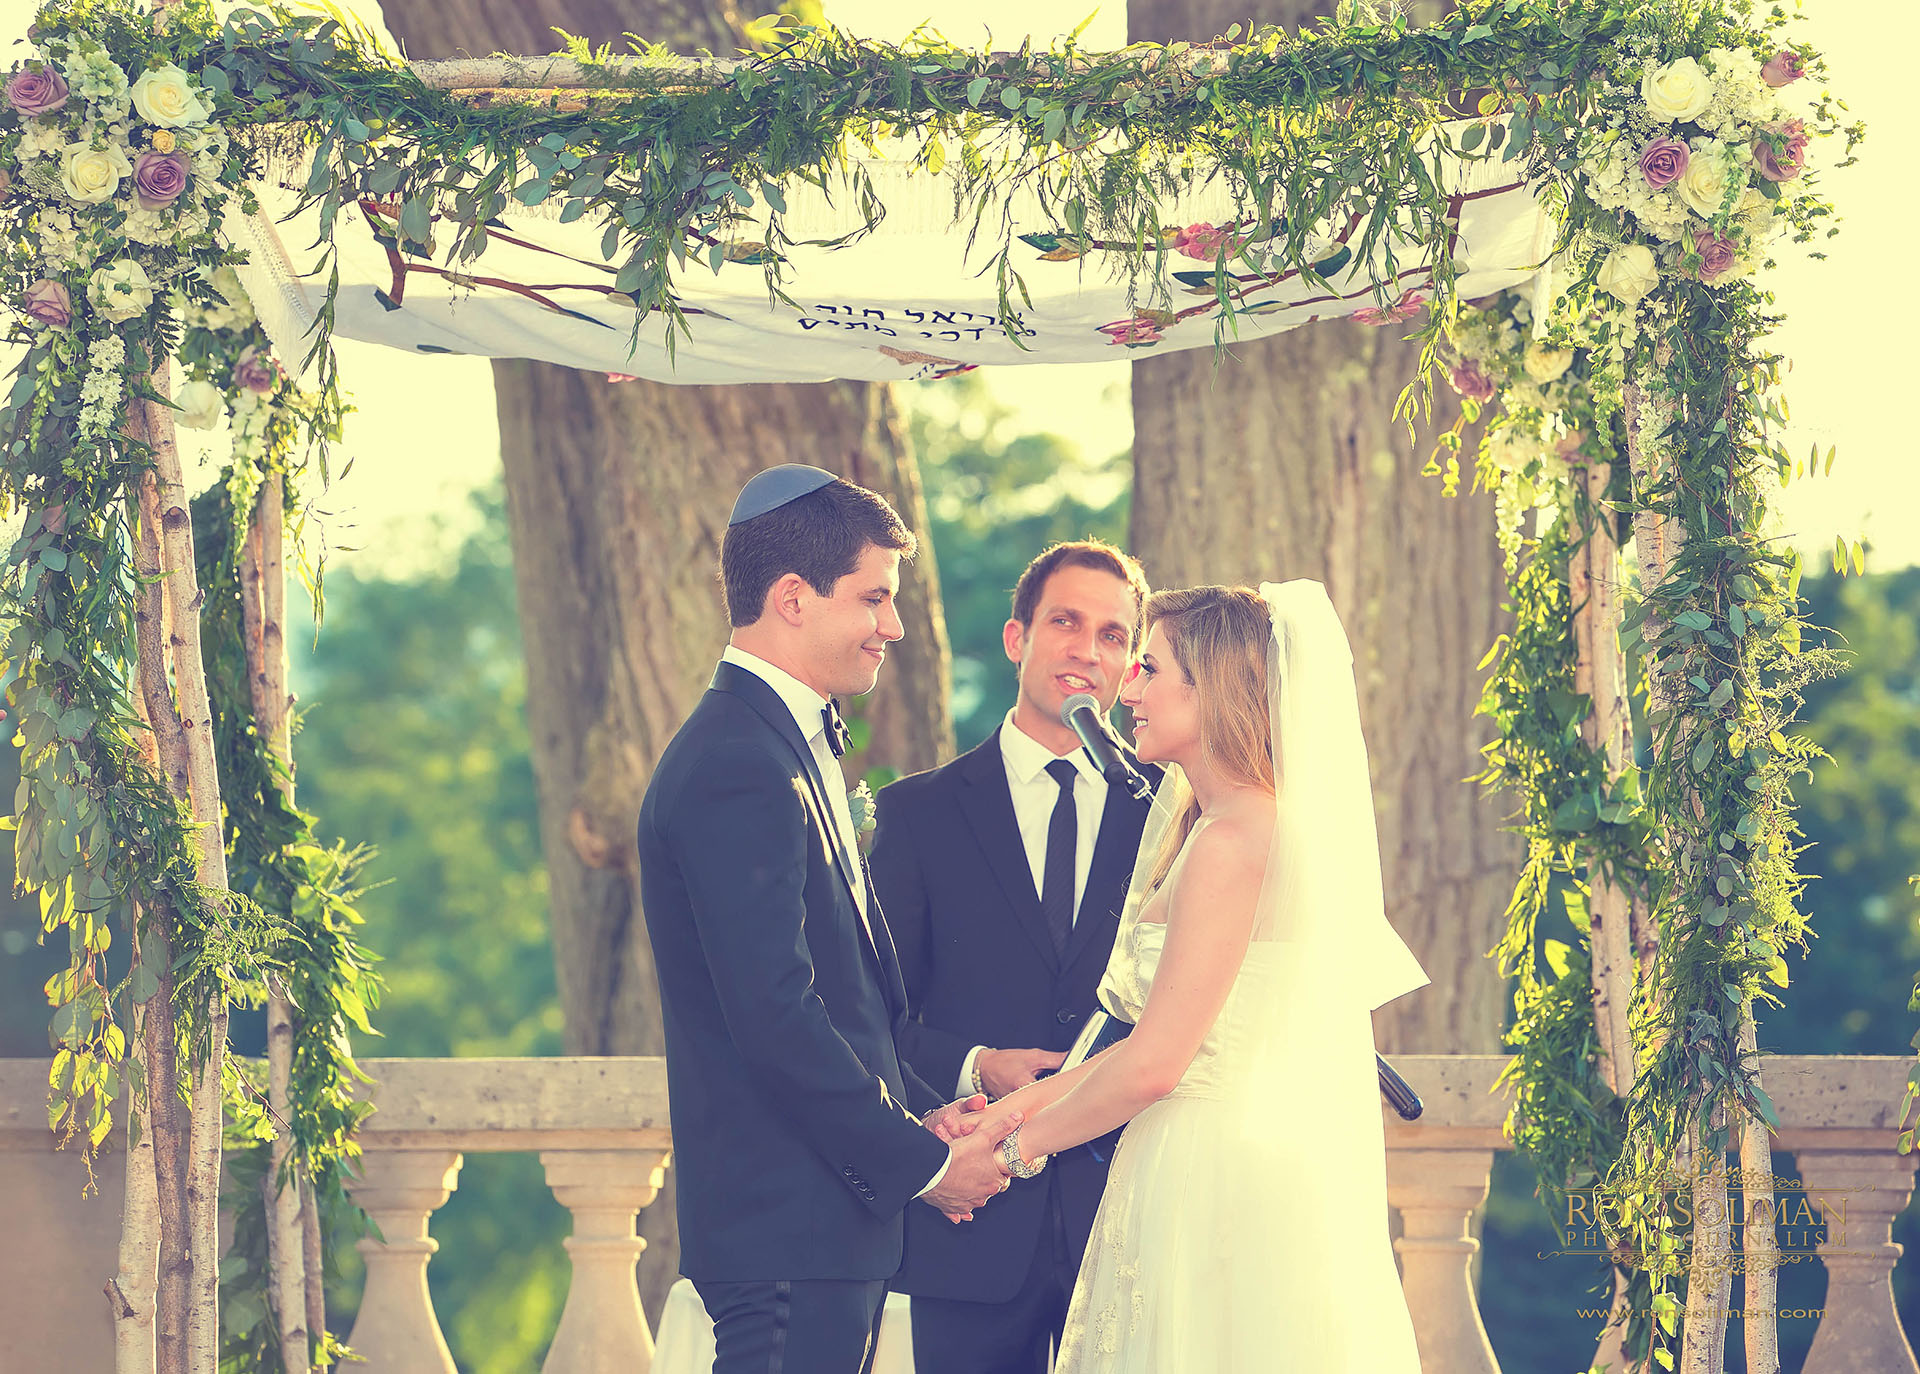 Best jewish wedding photos